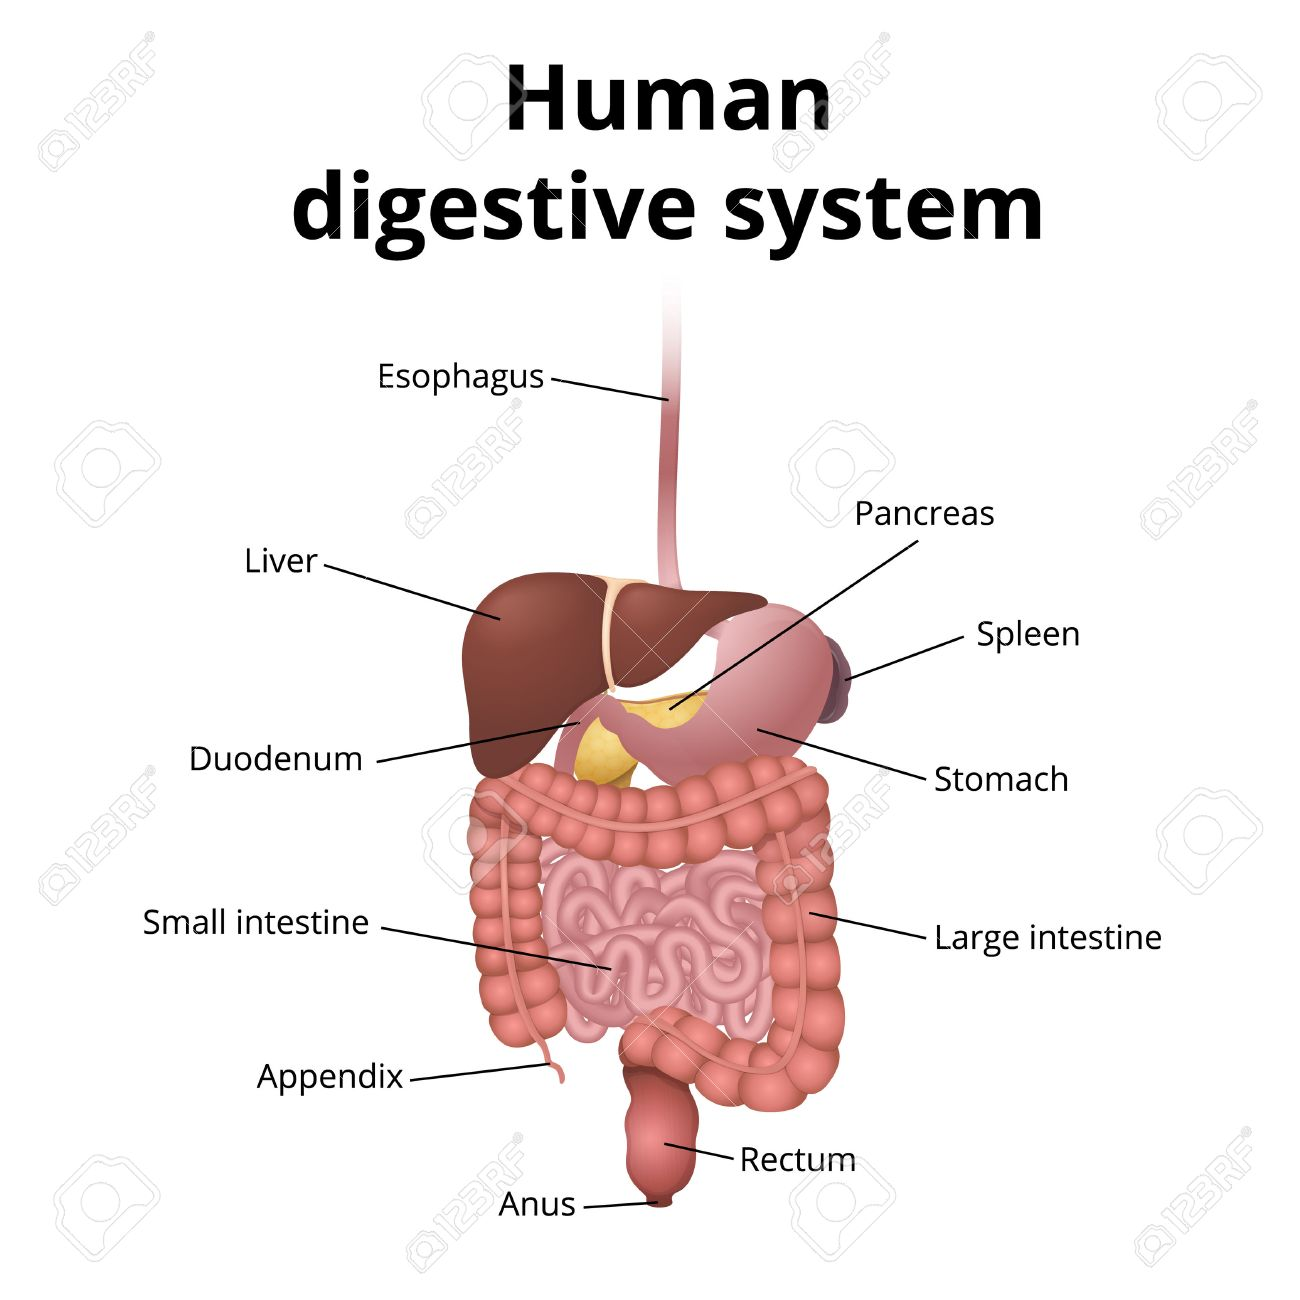 The location of the gastrointestinal tract in the body the human the location of the gastrointestinal tract in the body the human digestive system stock vector ccuart Gallery